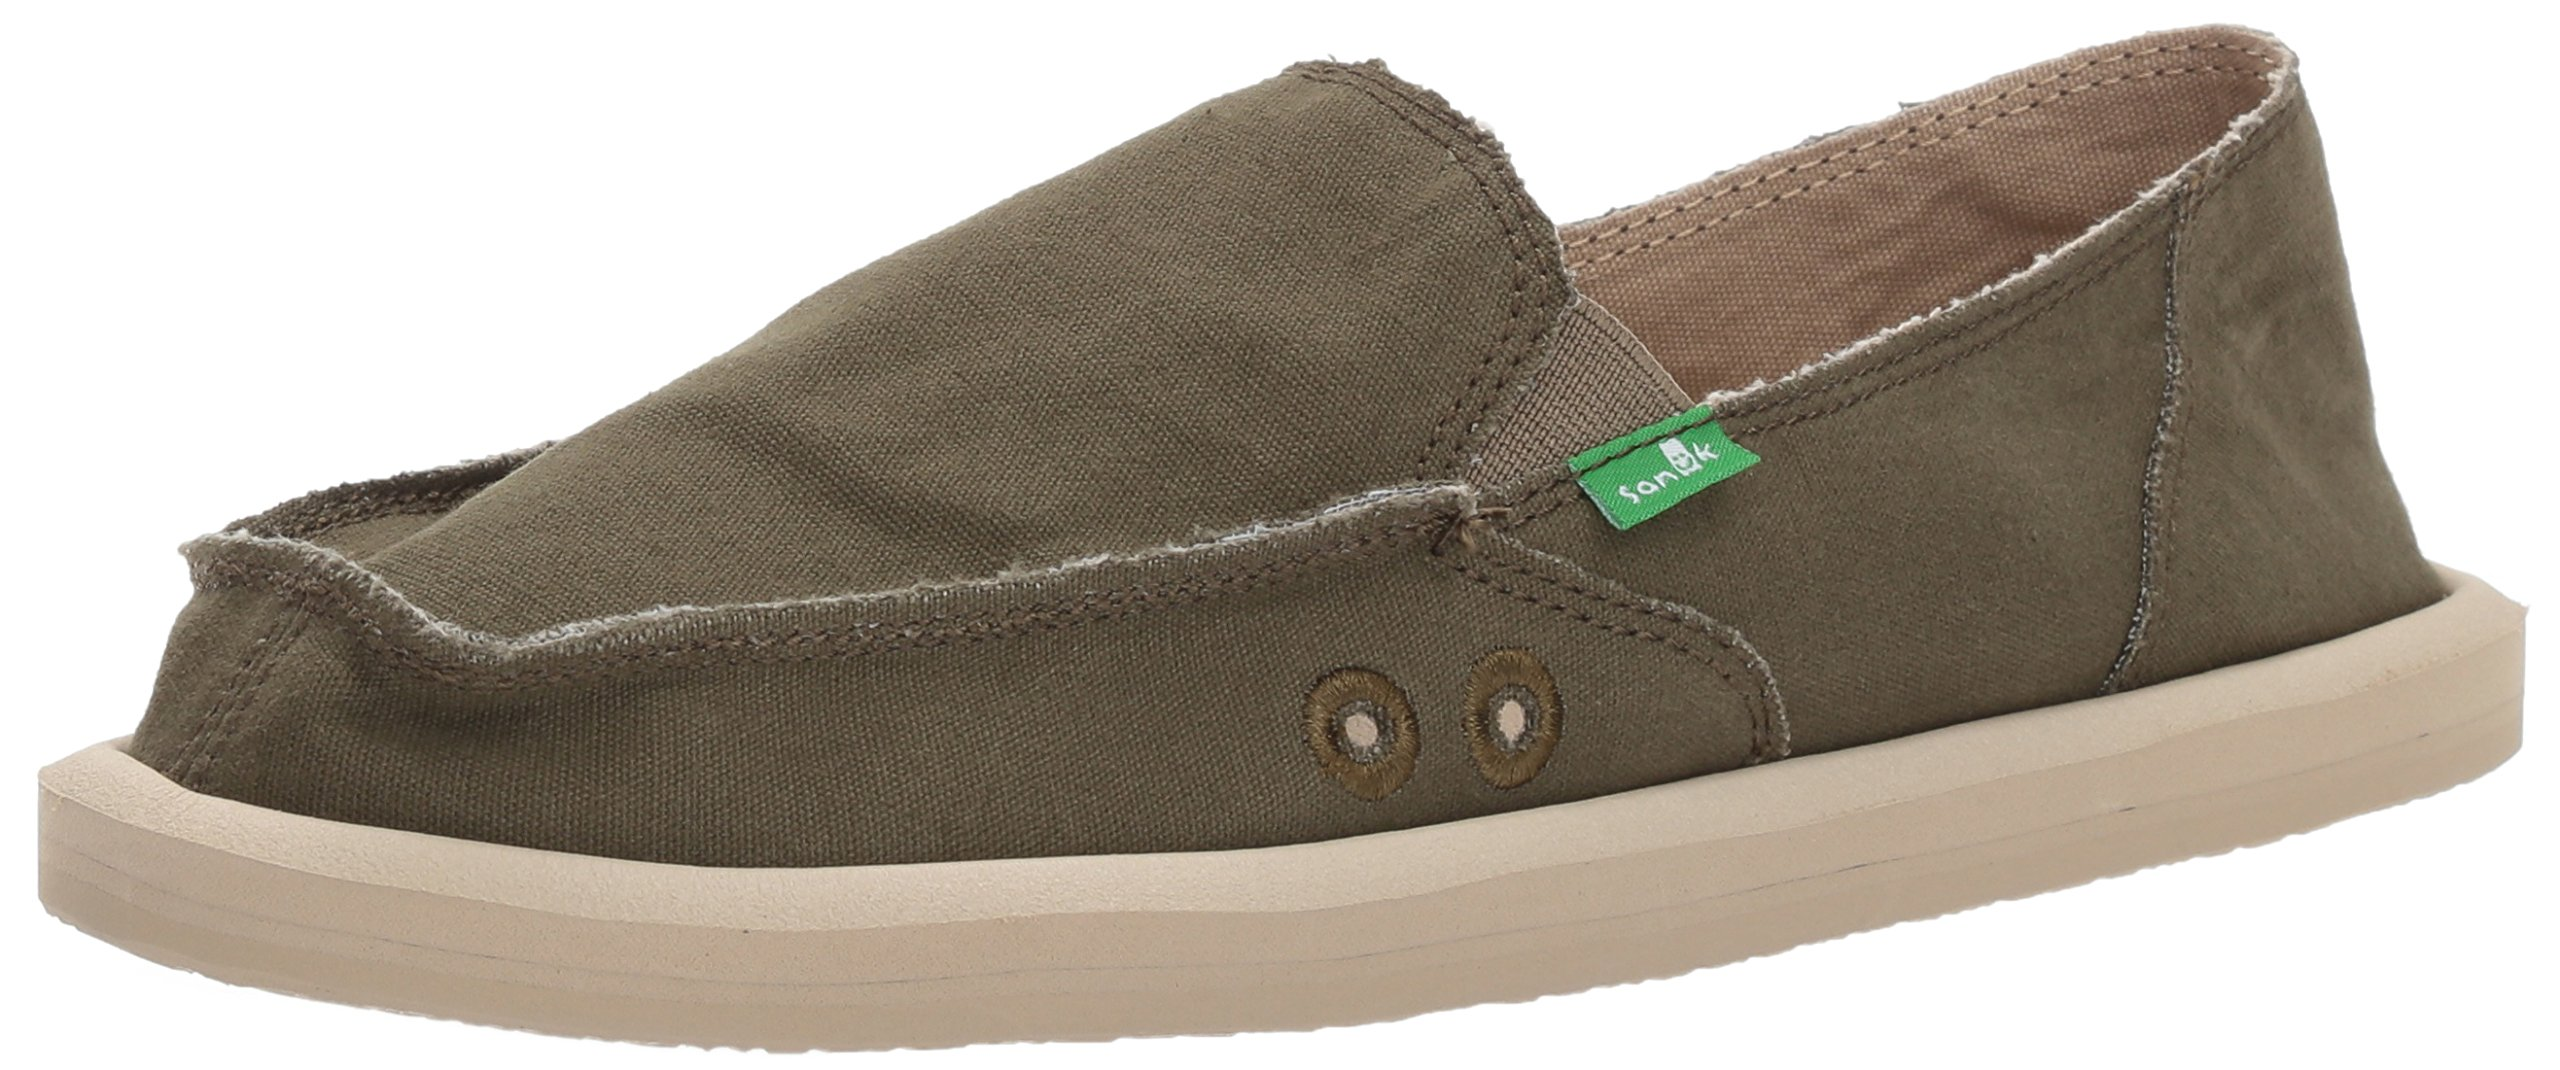 Sanuk Women's Donna Daily Slip-on Loafer, Dark Olive, 9 M US